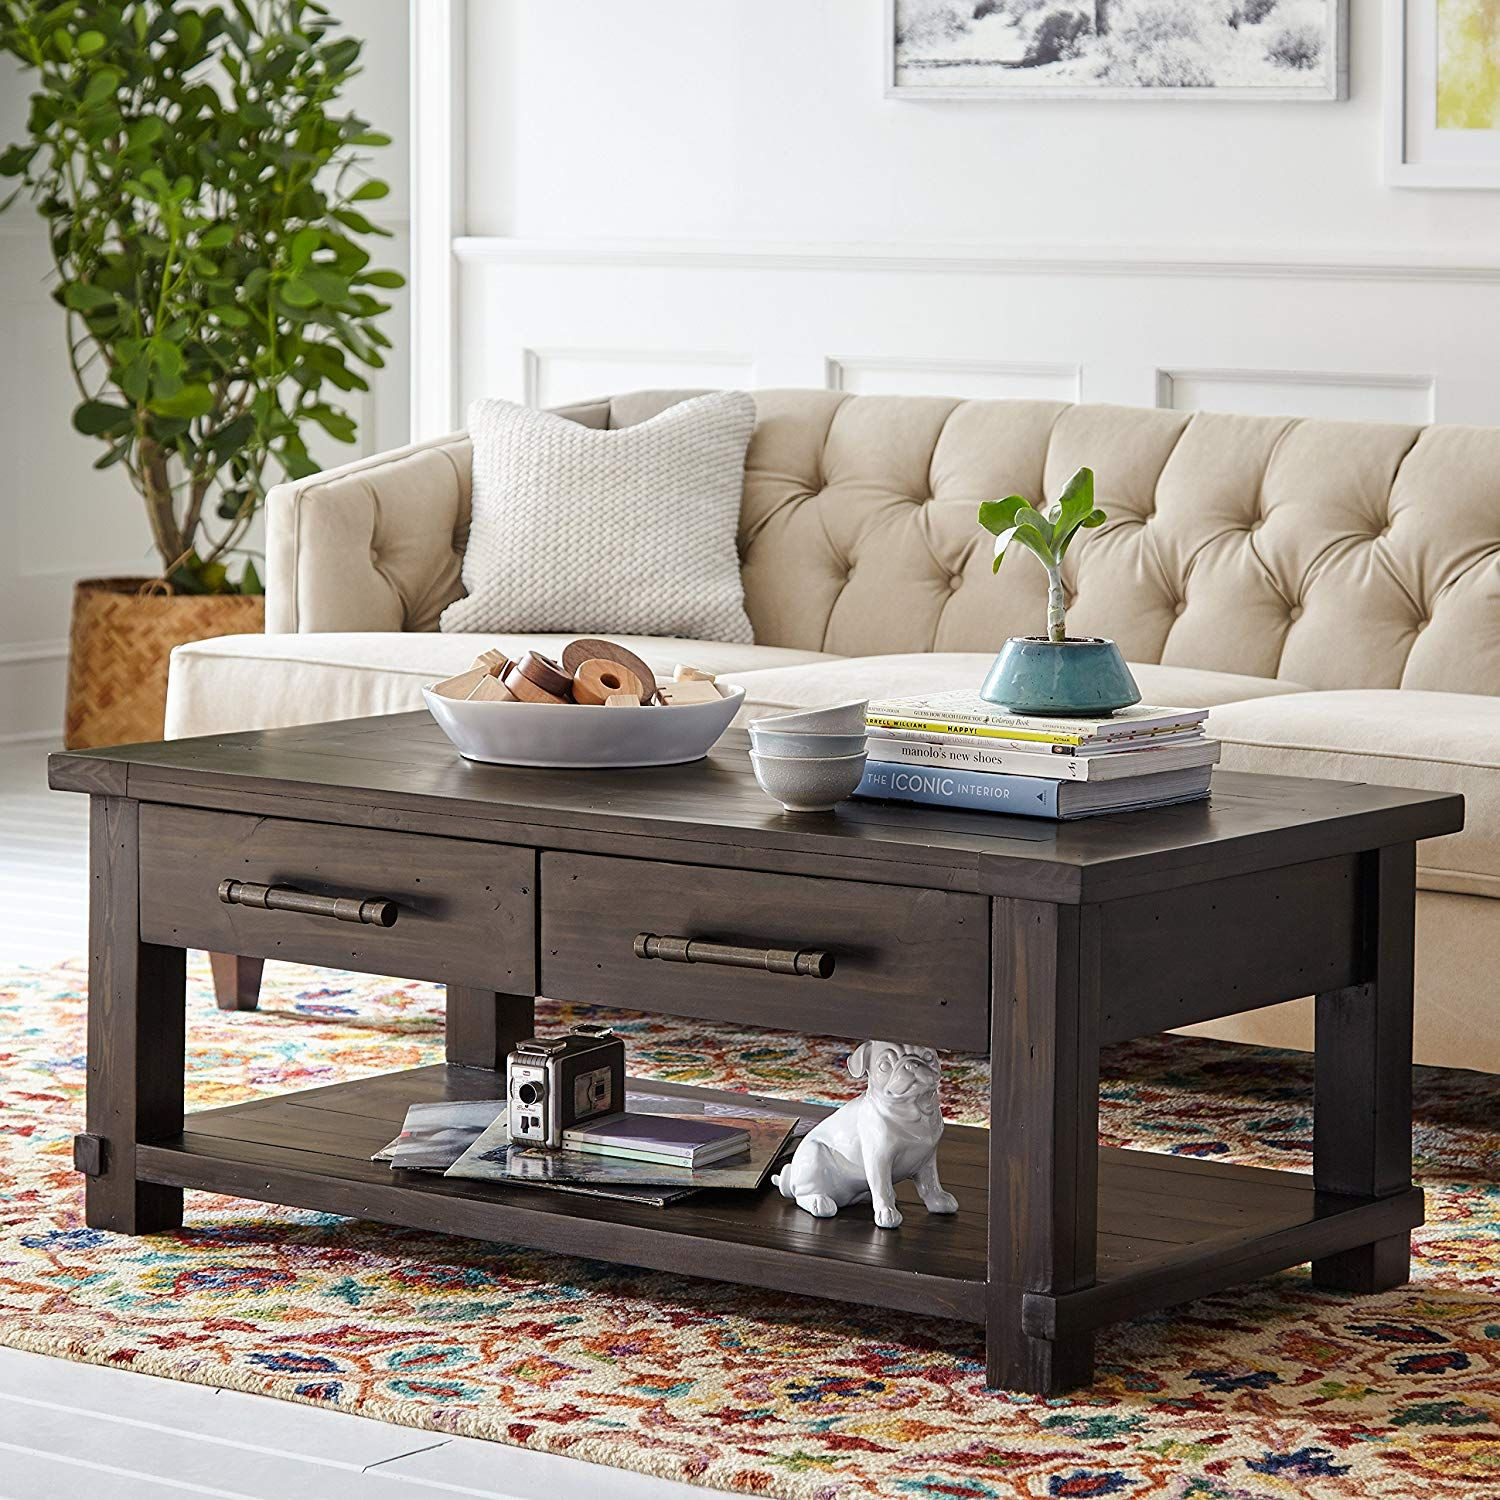 10 Leading Coffee Tables To Get On Amazon Ikea Coffe Table Wood Ideas Designs Home Glass Guy Le Tea Table Design Contemporary Coffee Table Coffee Table [ 1205 x 736 Pixel ]